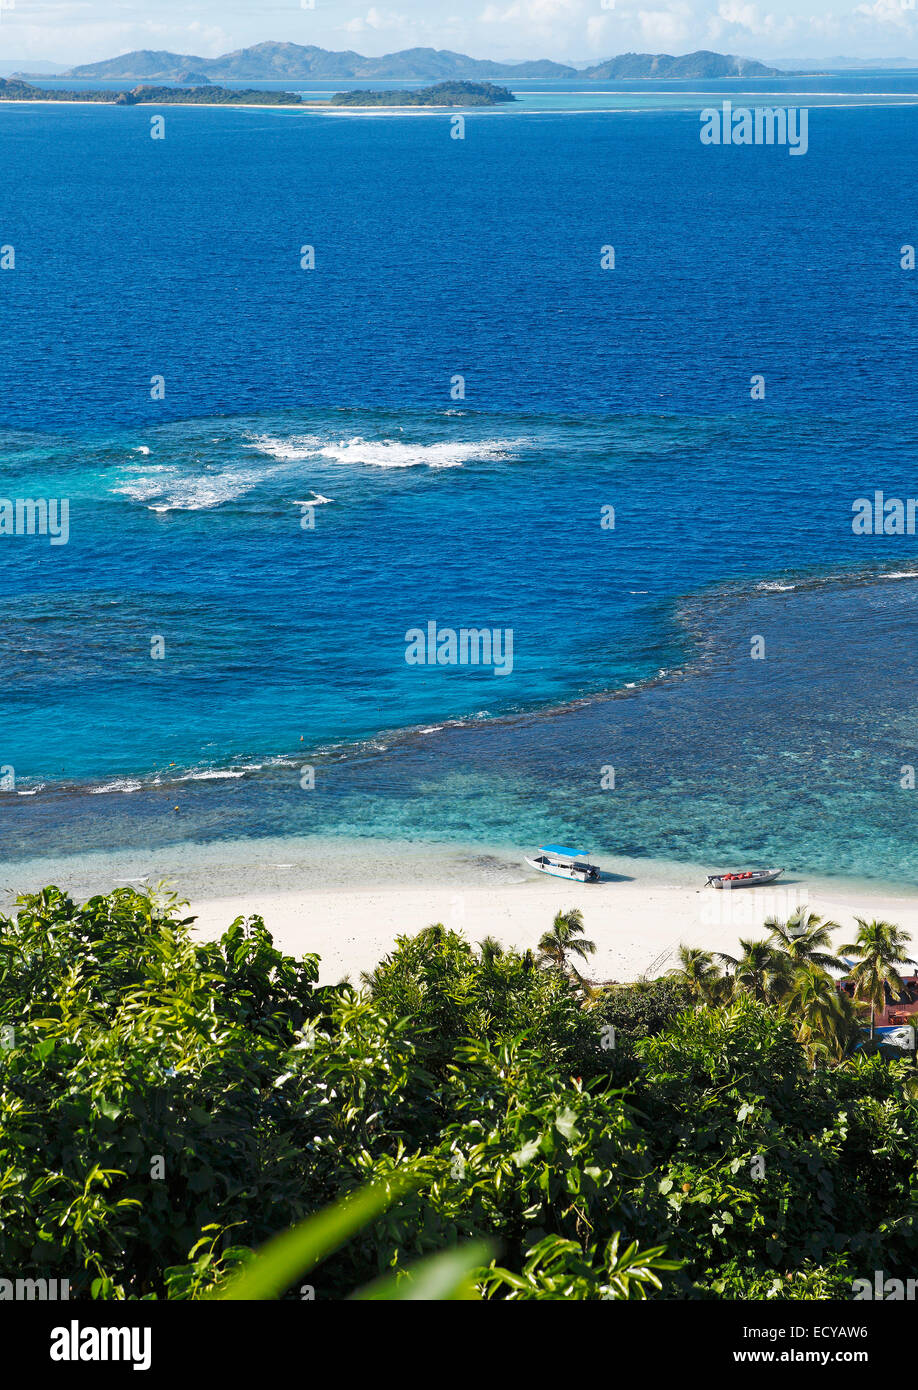 Beach, the South Seas, Matamanoa Island, Mamanuca Islands, Fiji - Stock Image